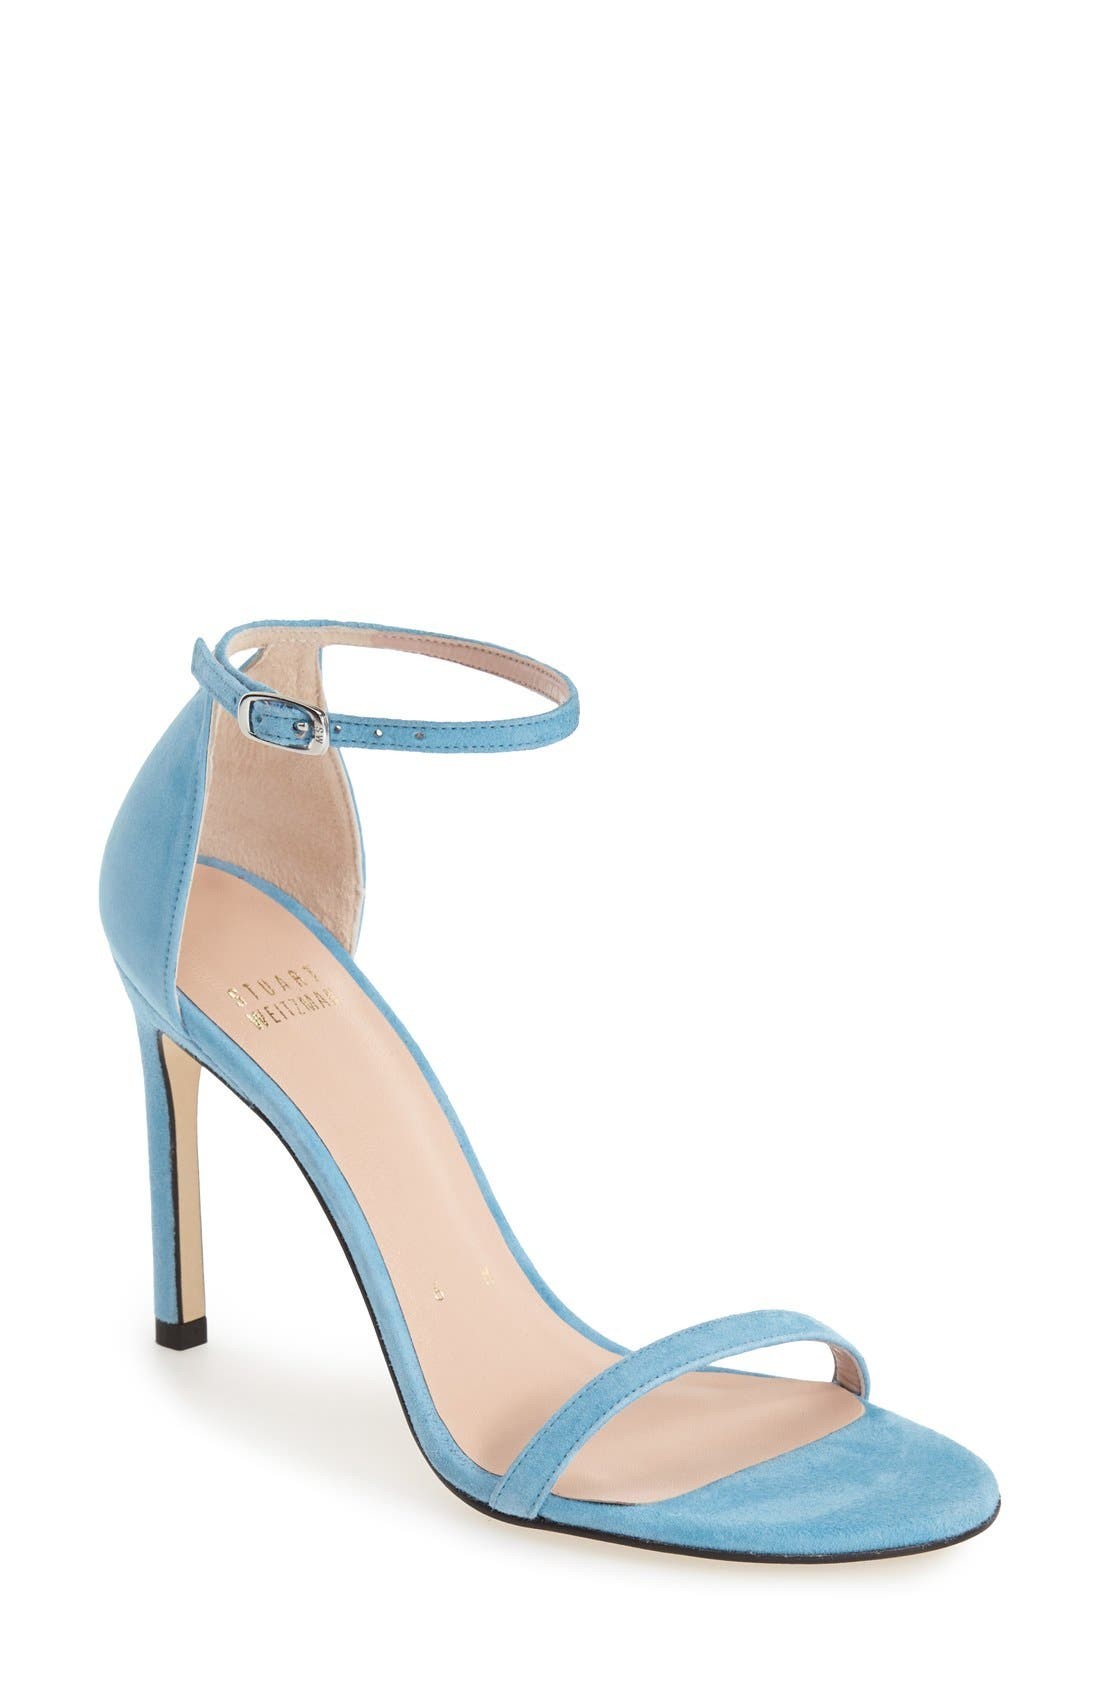 Nudistsong Ankle Strap Sandal,                             Main thumbnail 29, color,